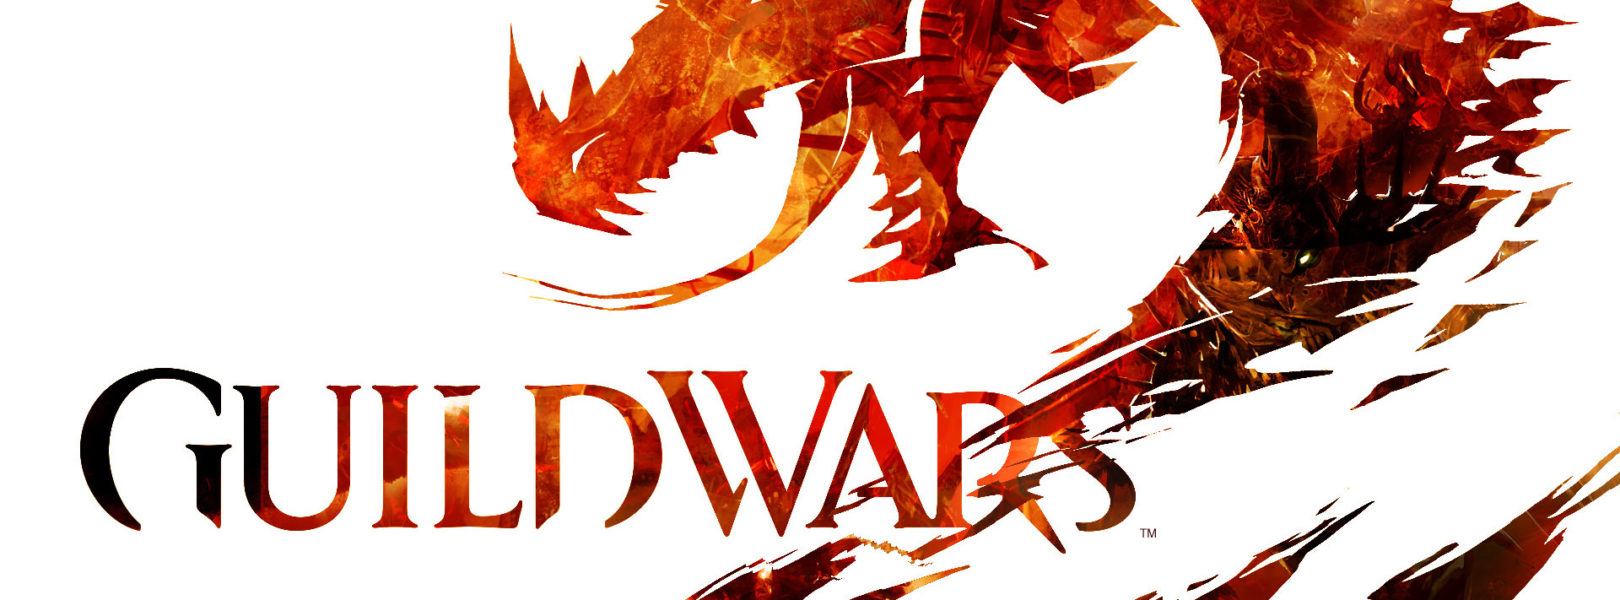 Guild Wars 2 Archives - Pivotal Gamers